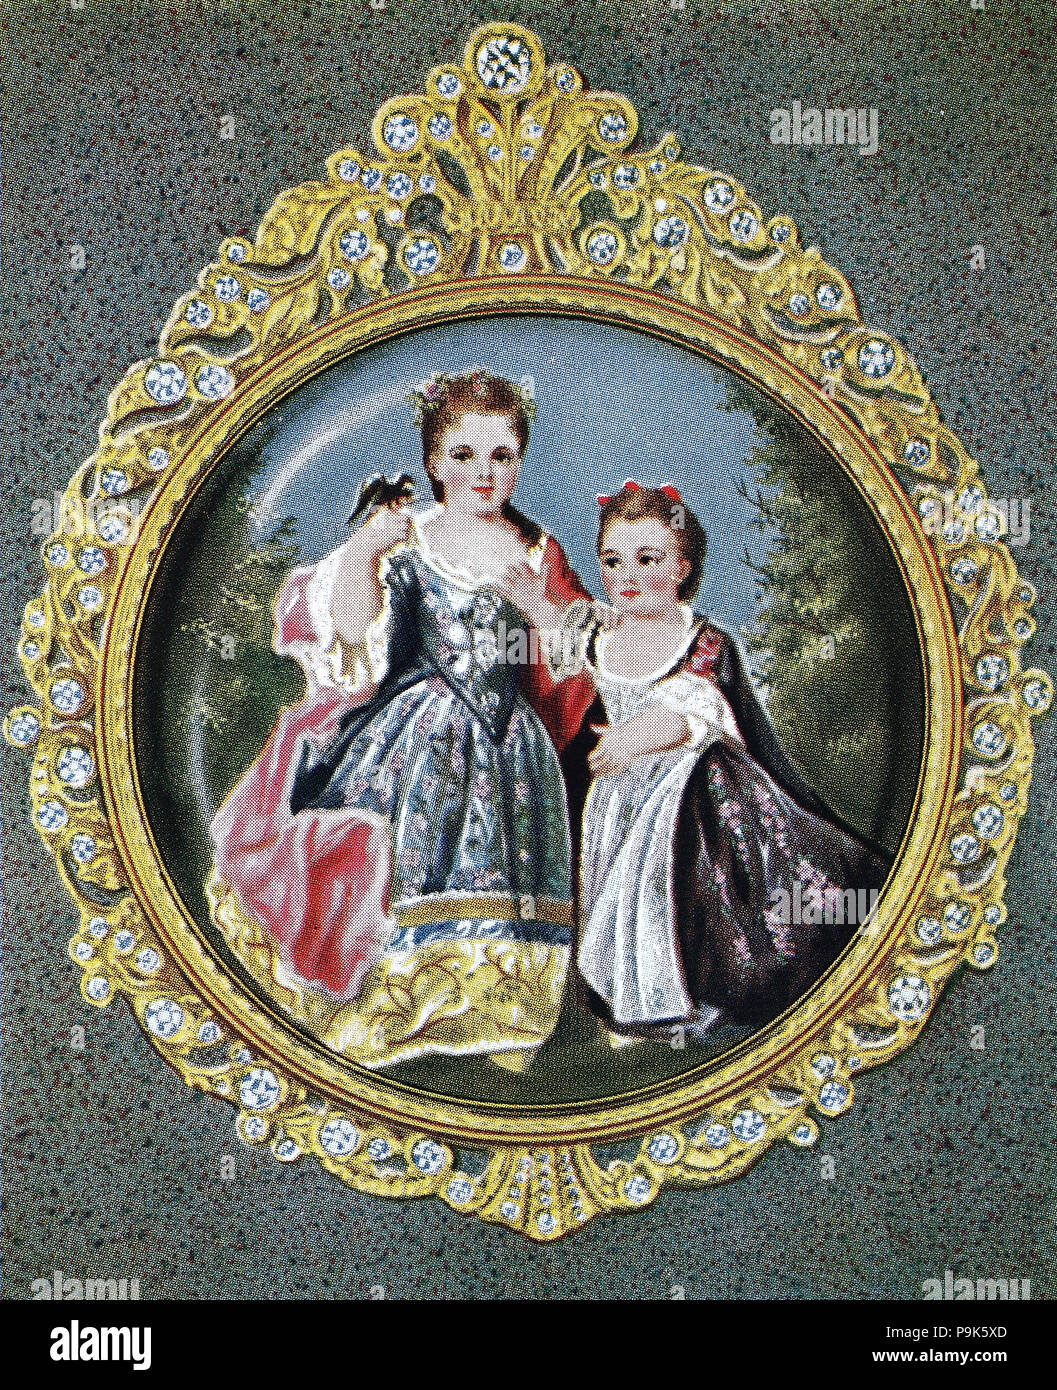 the daughters of Louis XV, 15 February 1710 – 10 May 1774, known as Louis the Beloved, was a monarch of the House of Bourbon who ruled as King of France from 1 September 1715 until his death in 1774, digital improved reproduction of an original print from the year 1900 - Stock Image